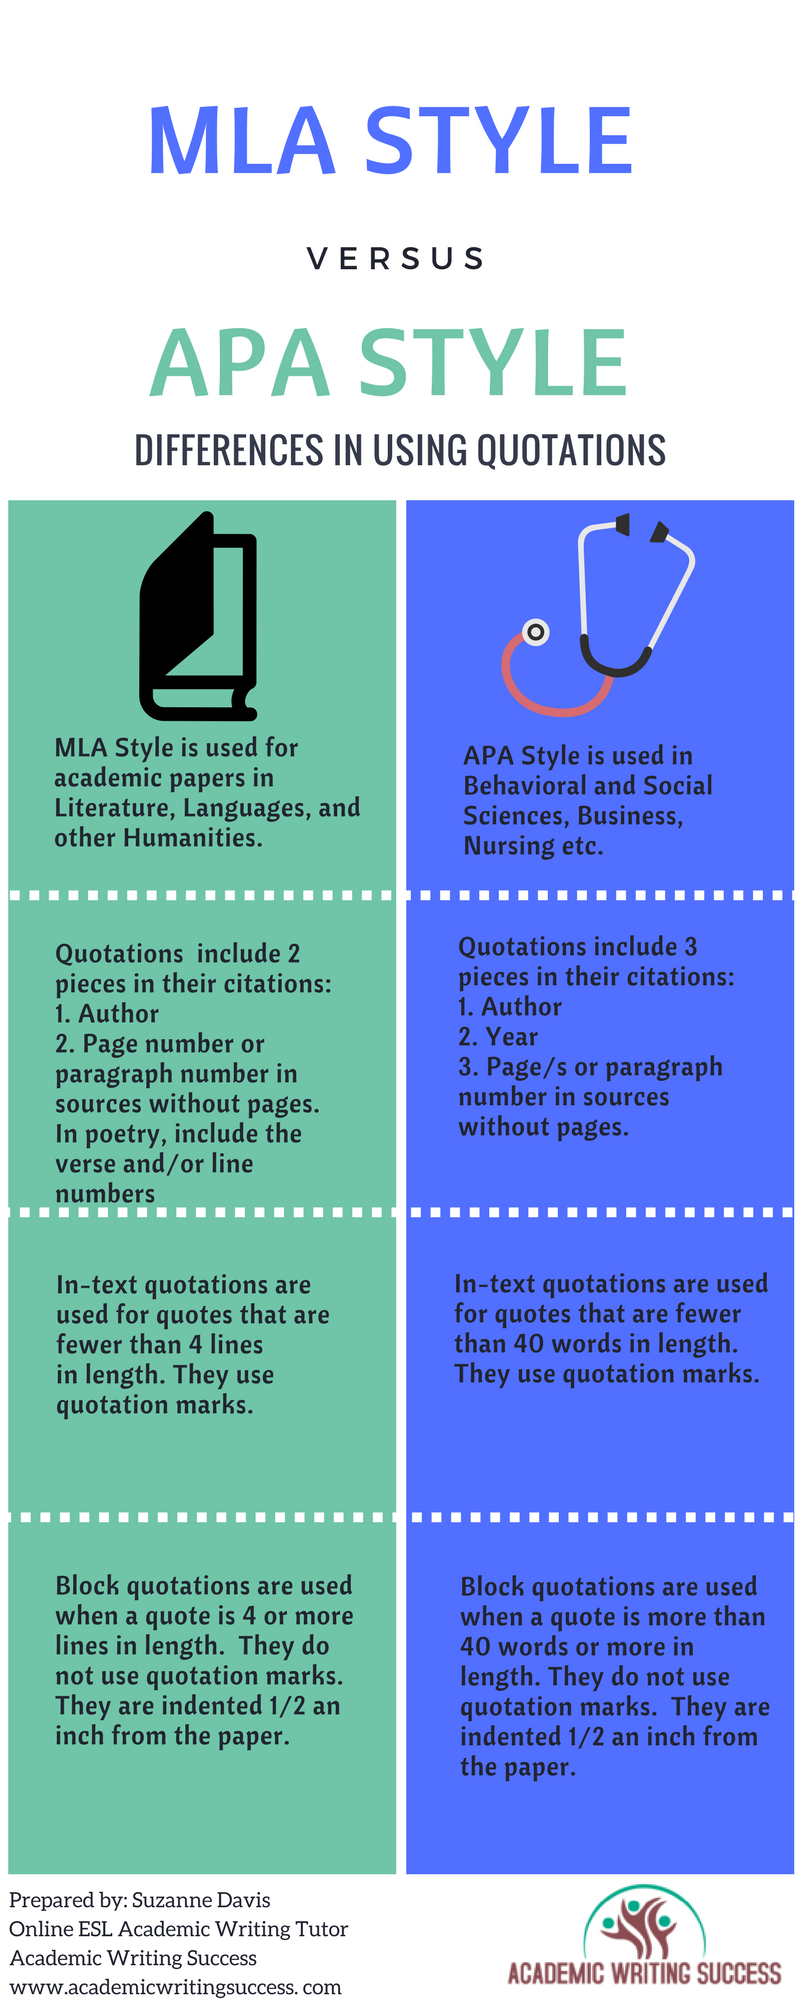 MLA vs. APA in quotations